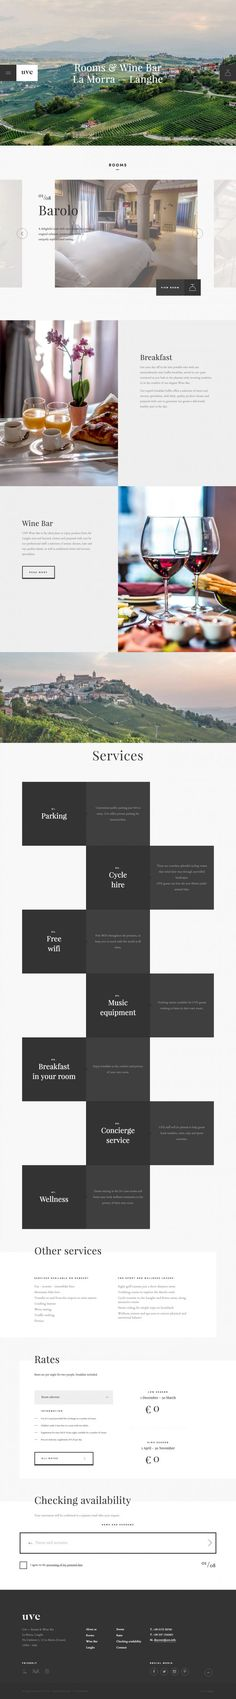 Design Brochure Hotel Galleries 69 Ideas For 2019 Website Design Layout, Web Layout, Layout Design, Flat Website, Hotel Website, Flat Design Inspiration, Design Ideas, Web Hotel, Design Theory